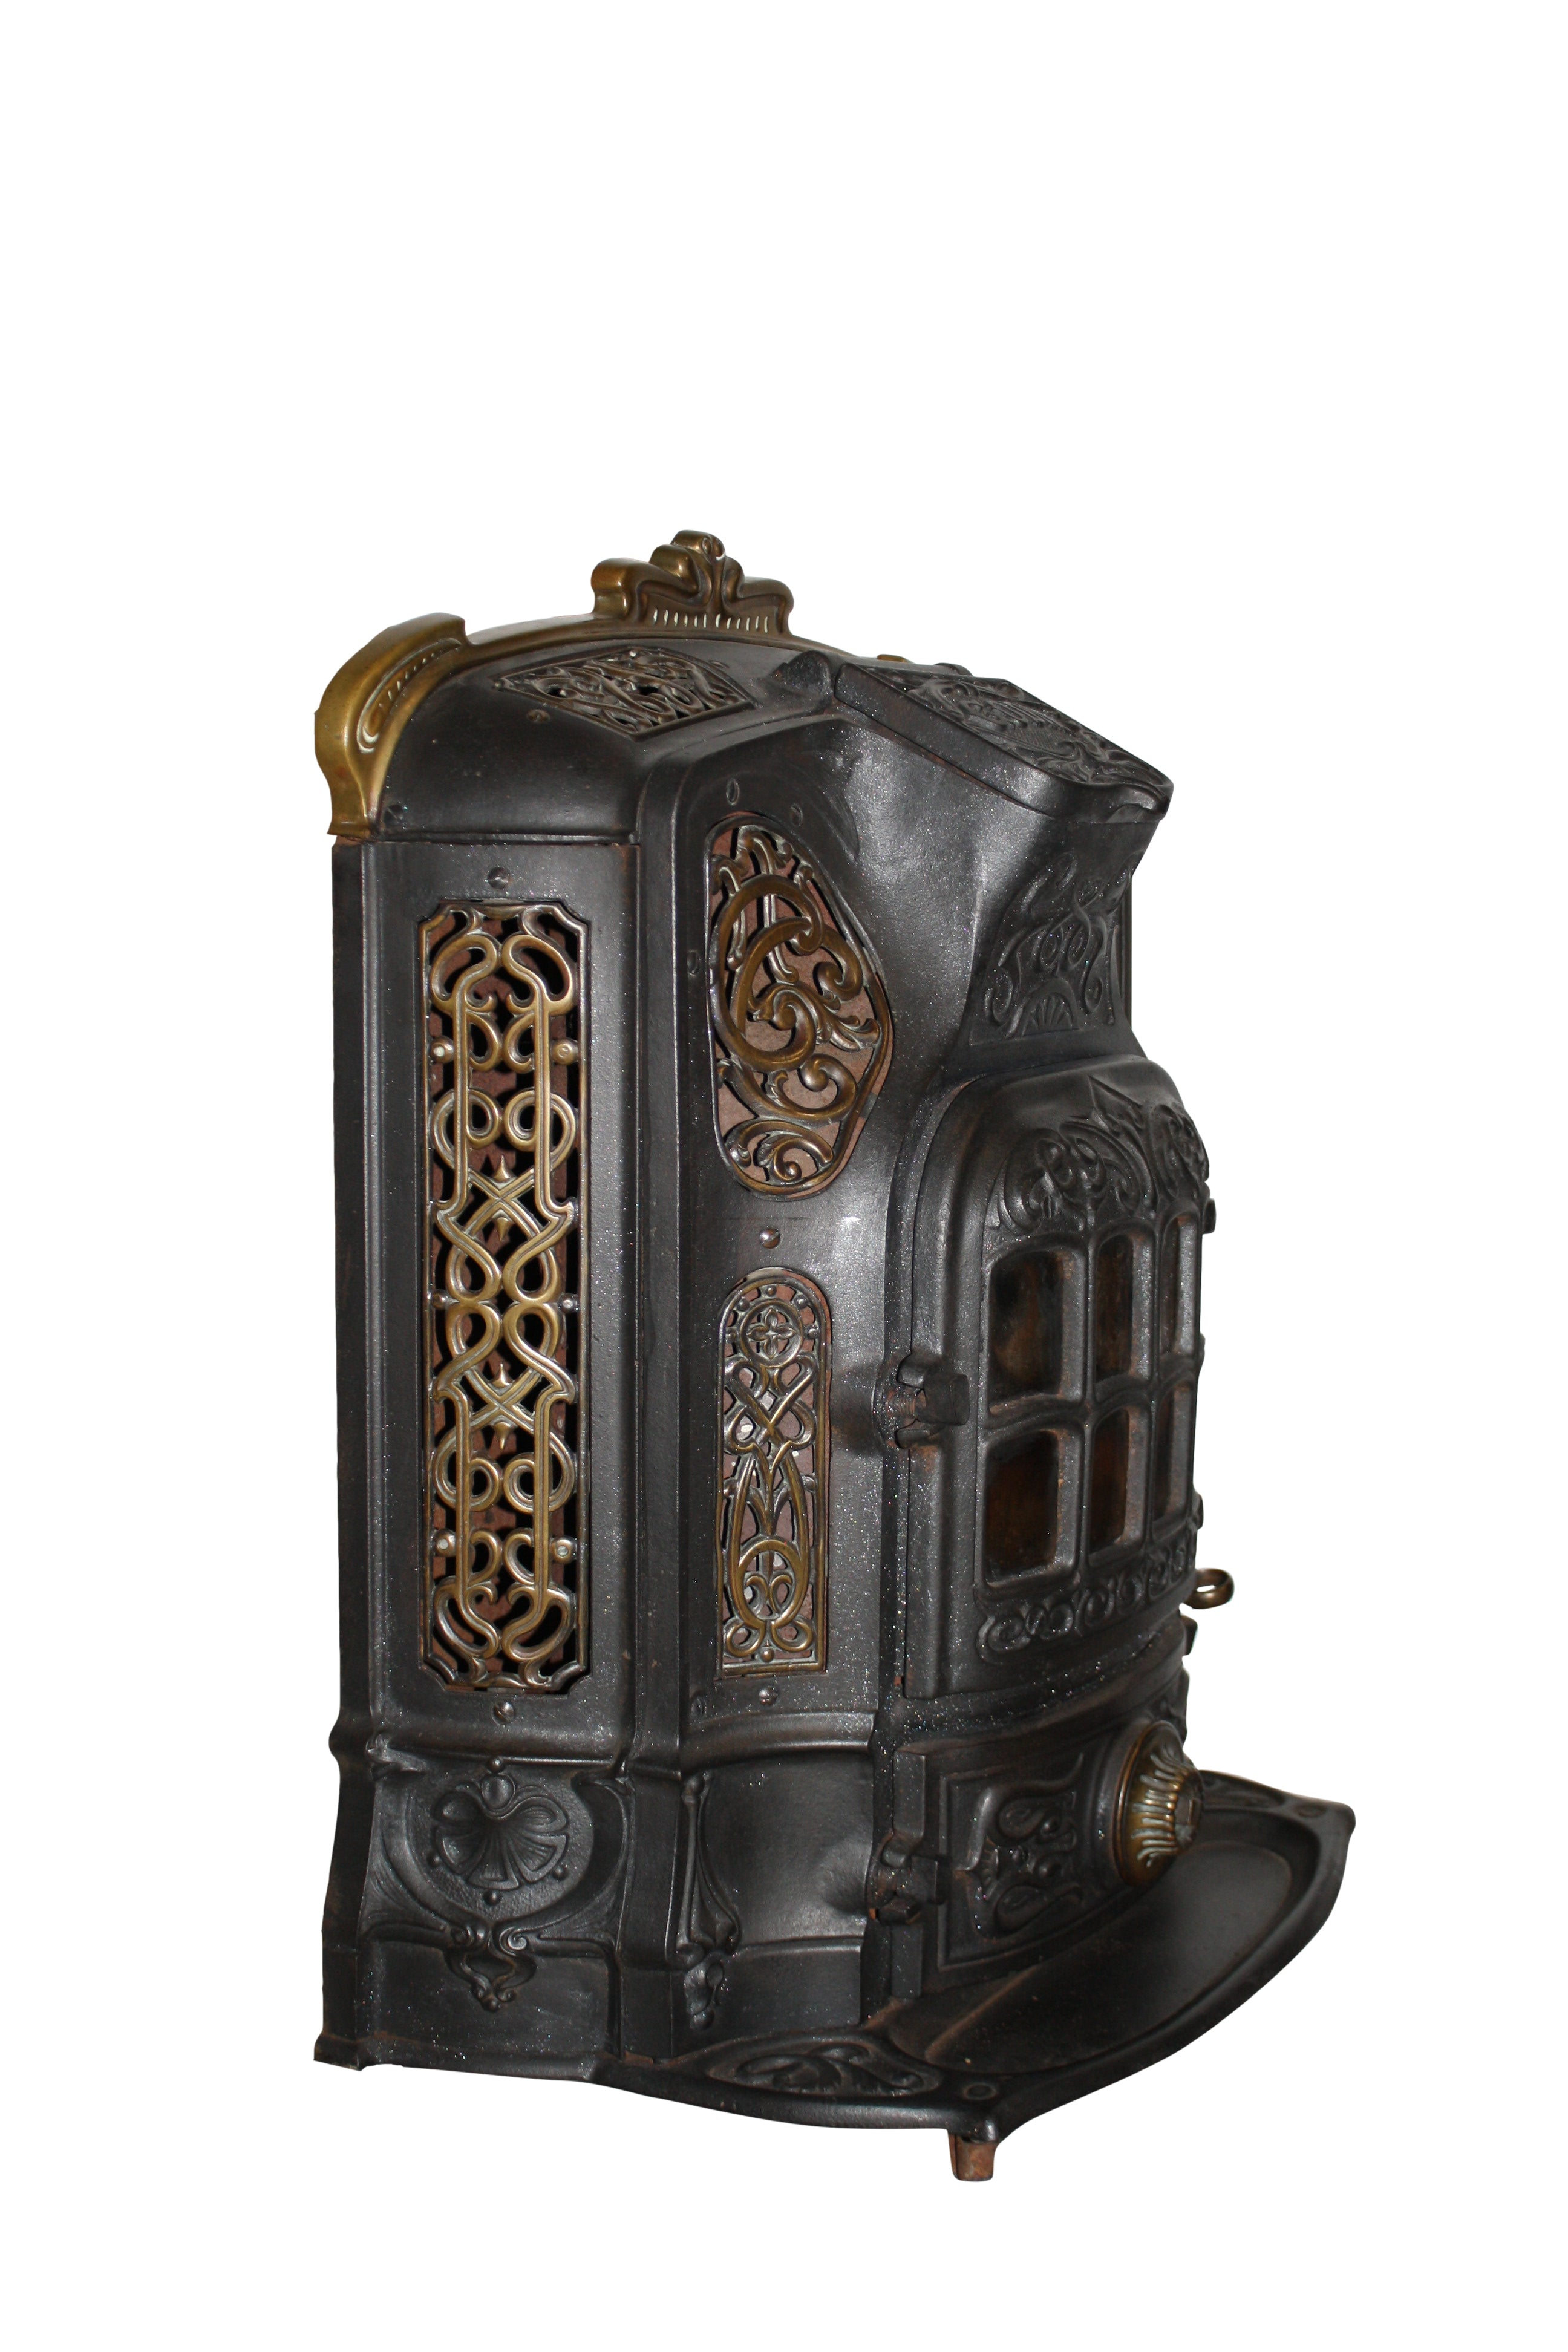 Godin Cast Iron Stove with Brass Accents